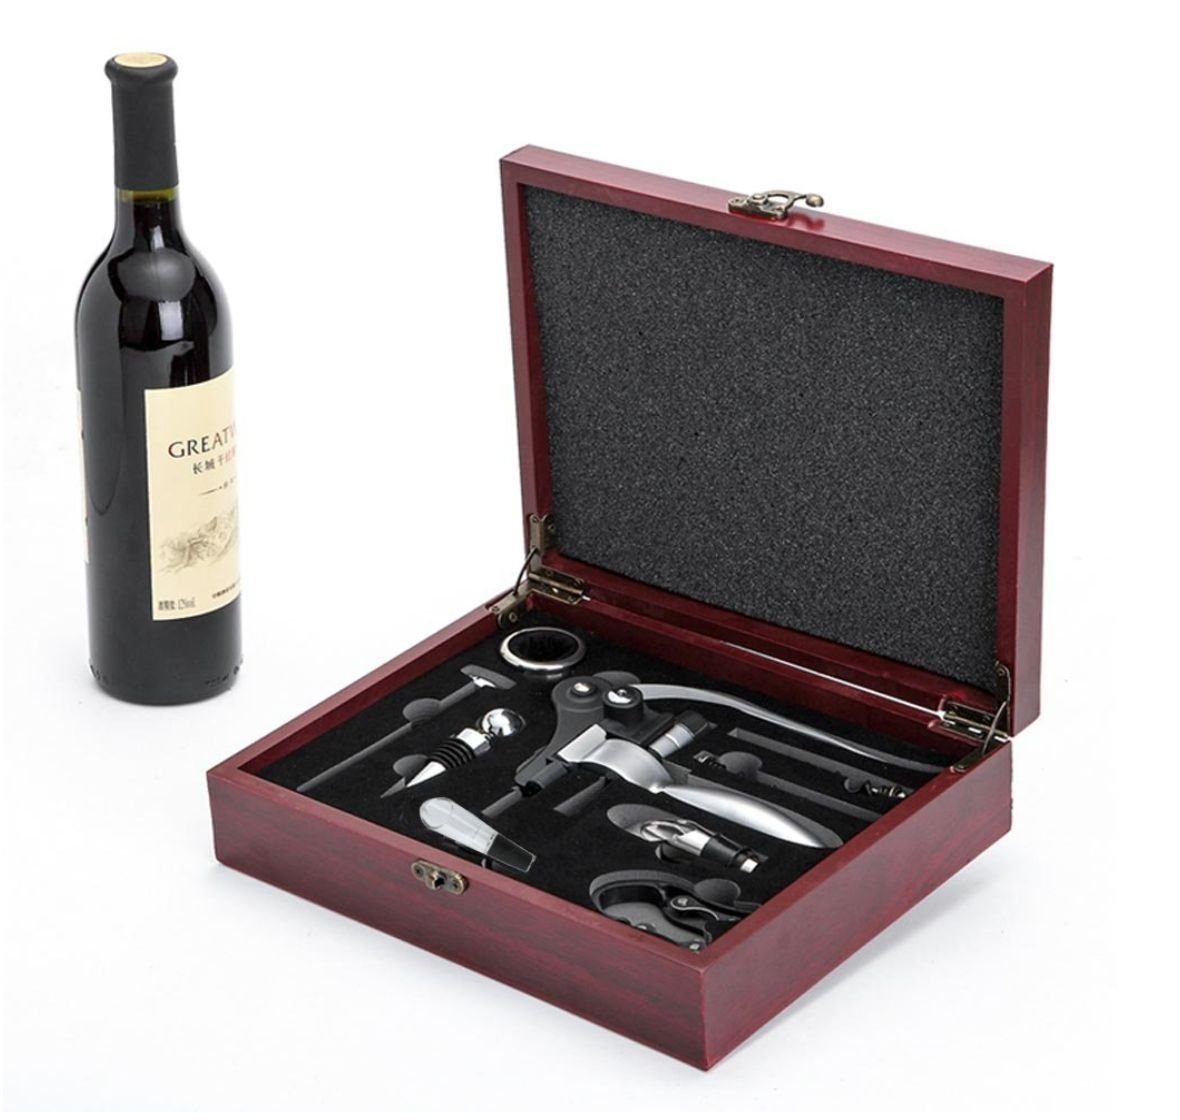 Luxury Celebrate Gift Set Drinking Wine Bar Decoration Kitchen Drinkware Accessories Bottle Hand Tools W/Classic Wood Box LXU3